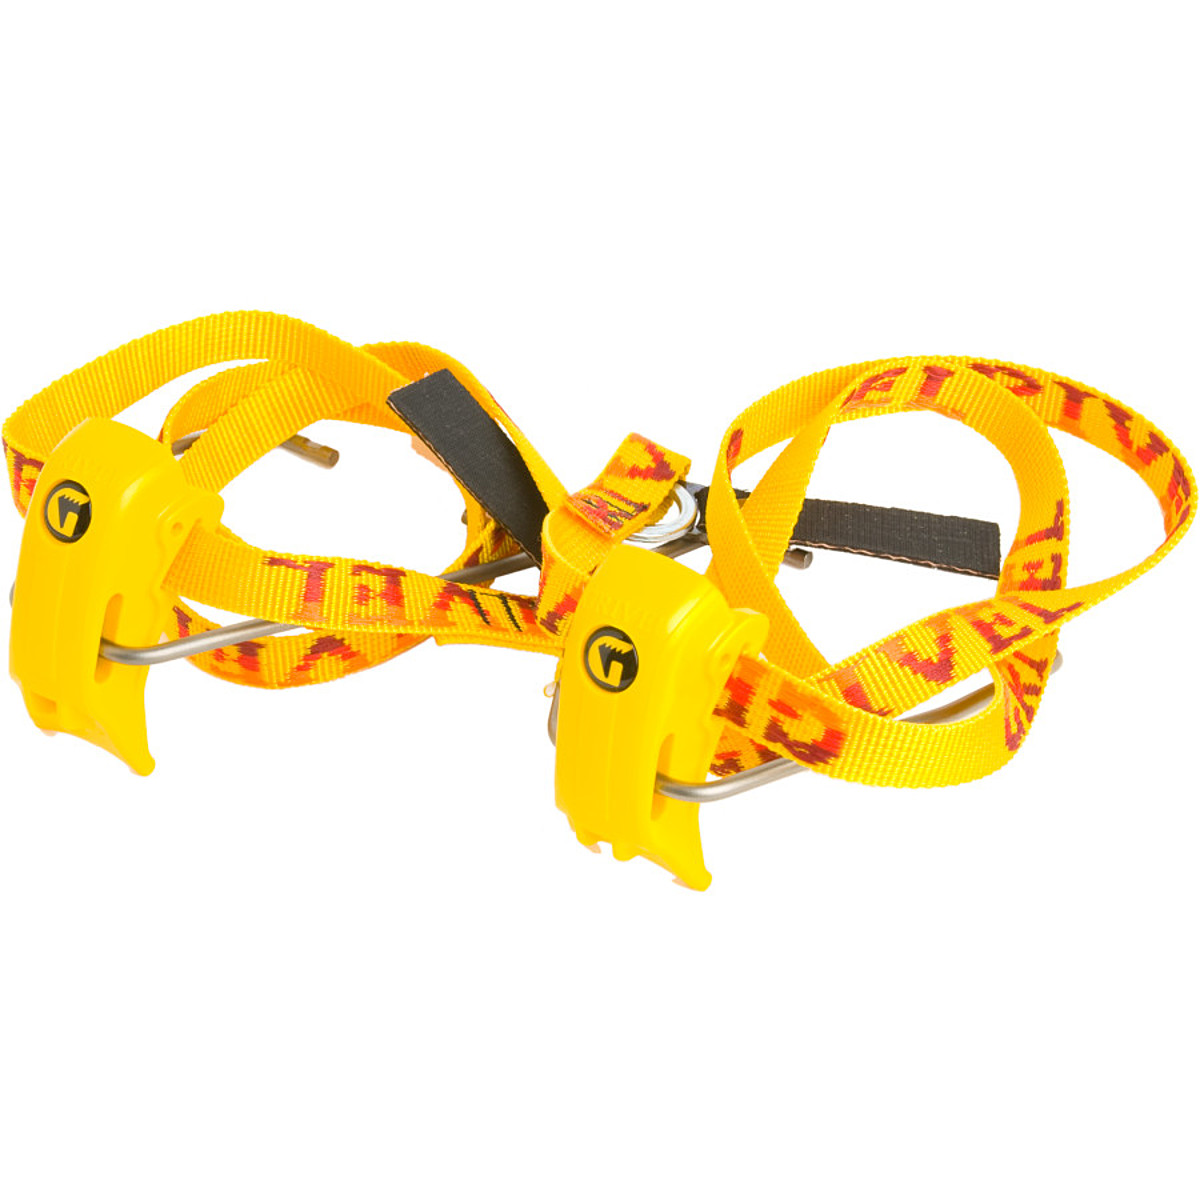 photo: Grivel G10/AT/G12/G14/ Heel Lever X2 - Spare Parts crampon accessory